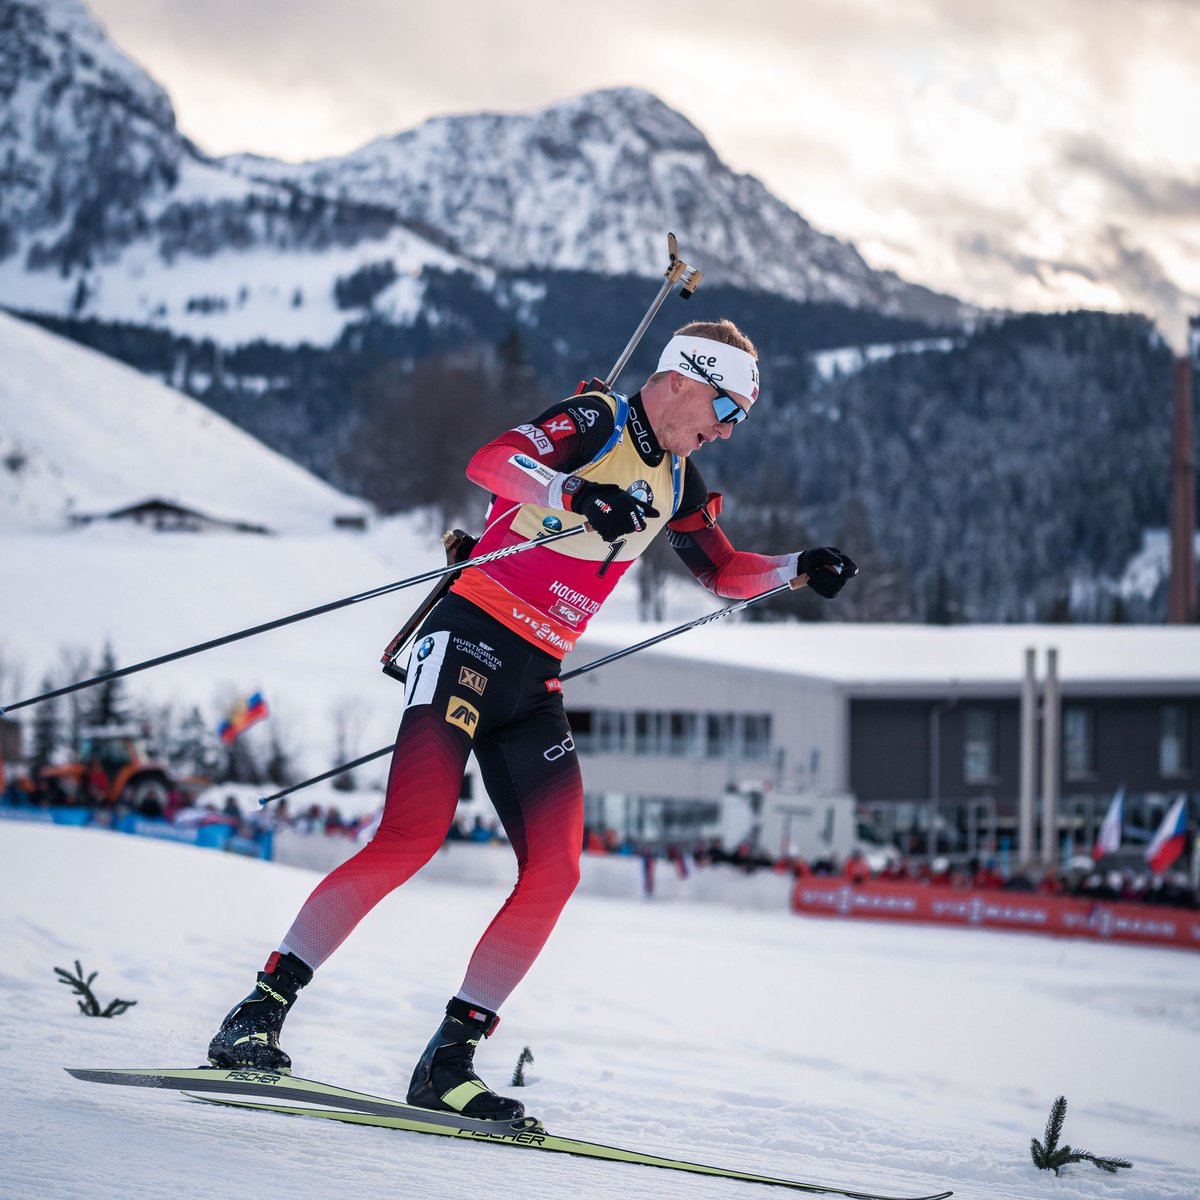 2018 Olympic champion, Johannes never stops walking up the world's #biathlon podiums, finishing the 2018-2019 season with a total of 5 Crystal Globes and no less than 16 individual race victories in the World Cup, the best season in biathlon history. #RichardMille